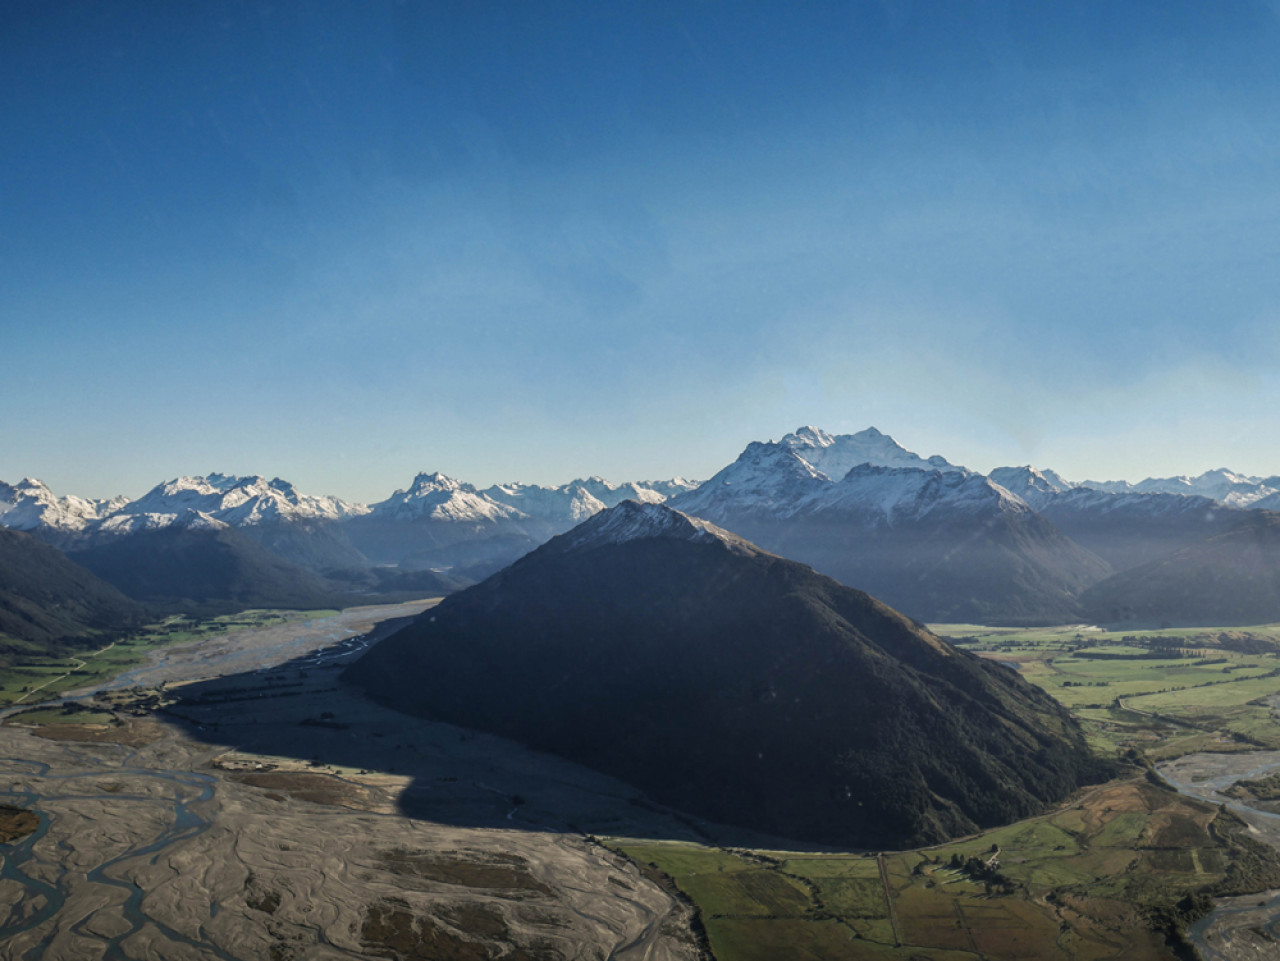 Mount Earnslaw as seen from the helicopter.